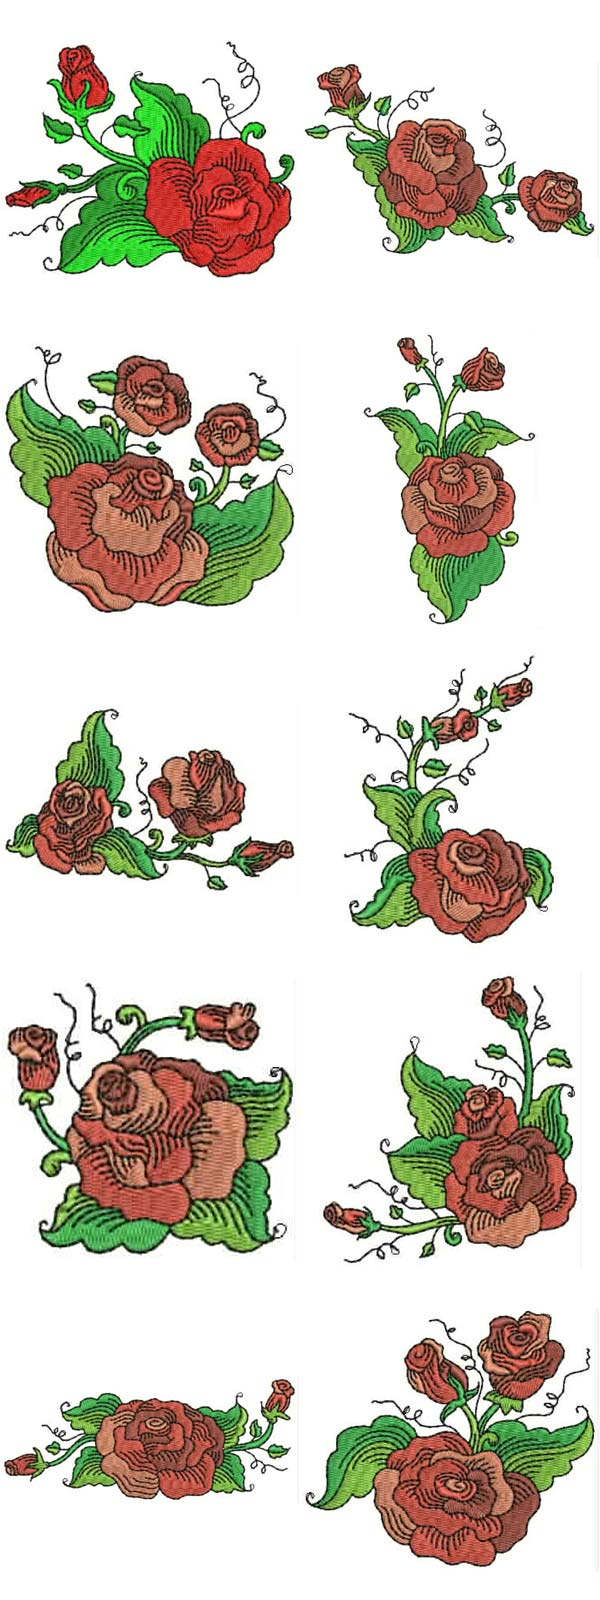 FREE ROSE EMBROIDERY DESIGN « EMBROIDERY & ORIGAMI